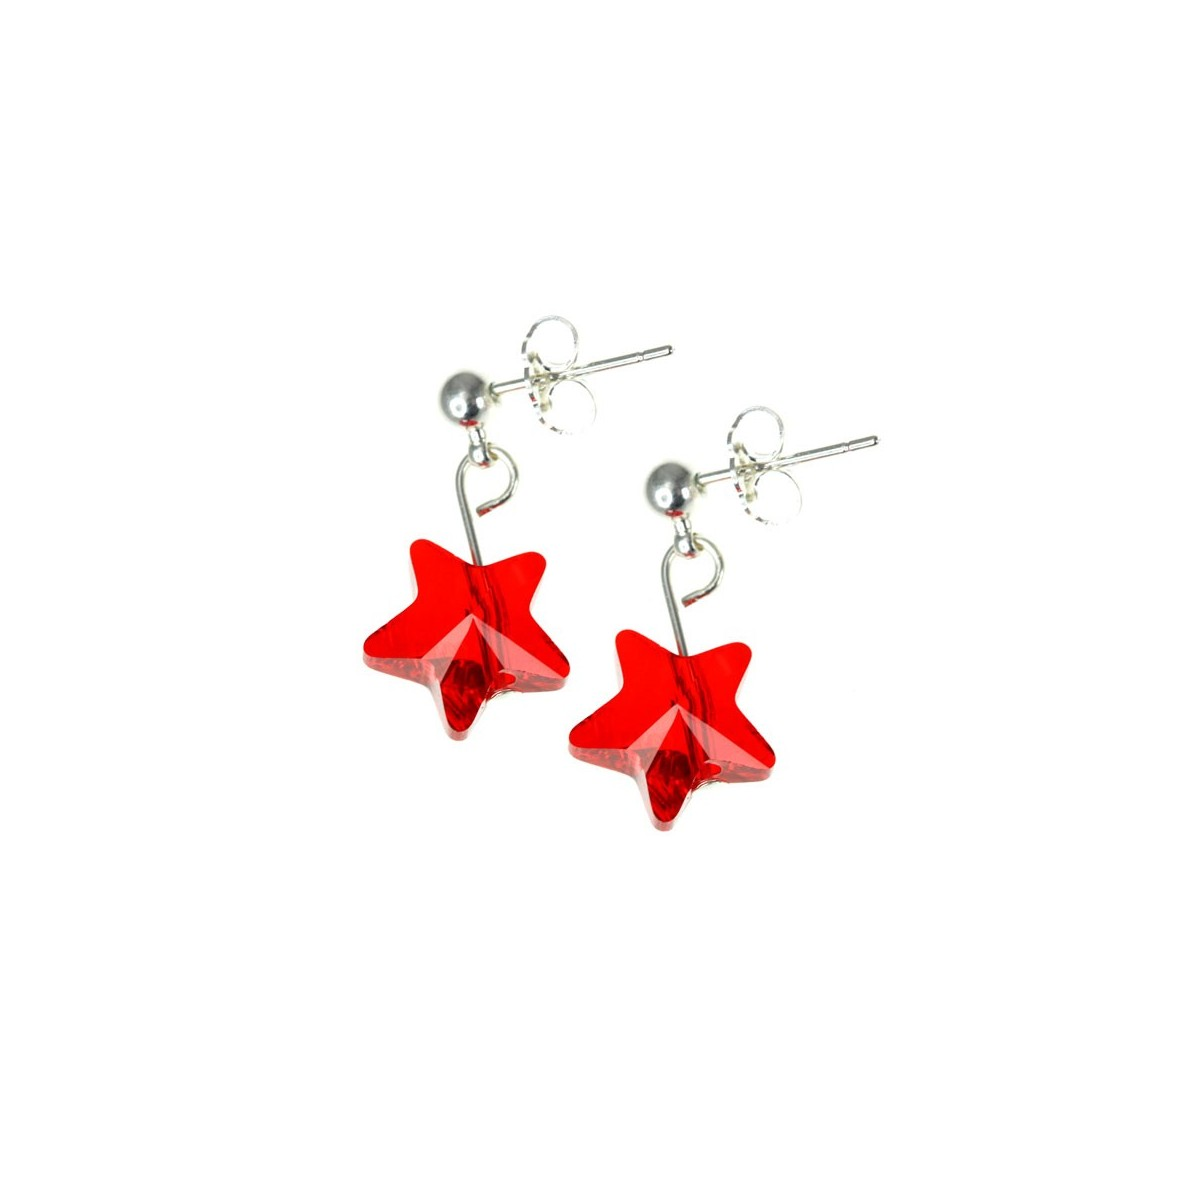 Boucles d'oreilles So Charm ornées d'une étoile rouge made with crystal from Swarovski